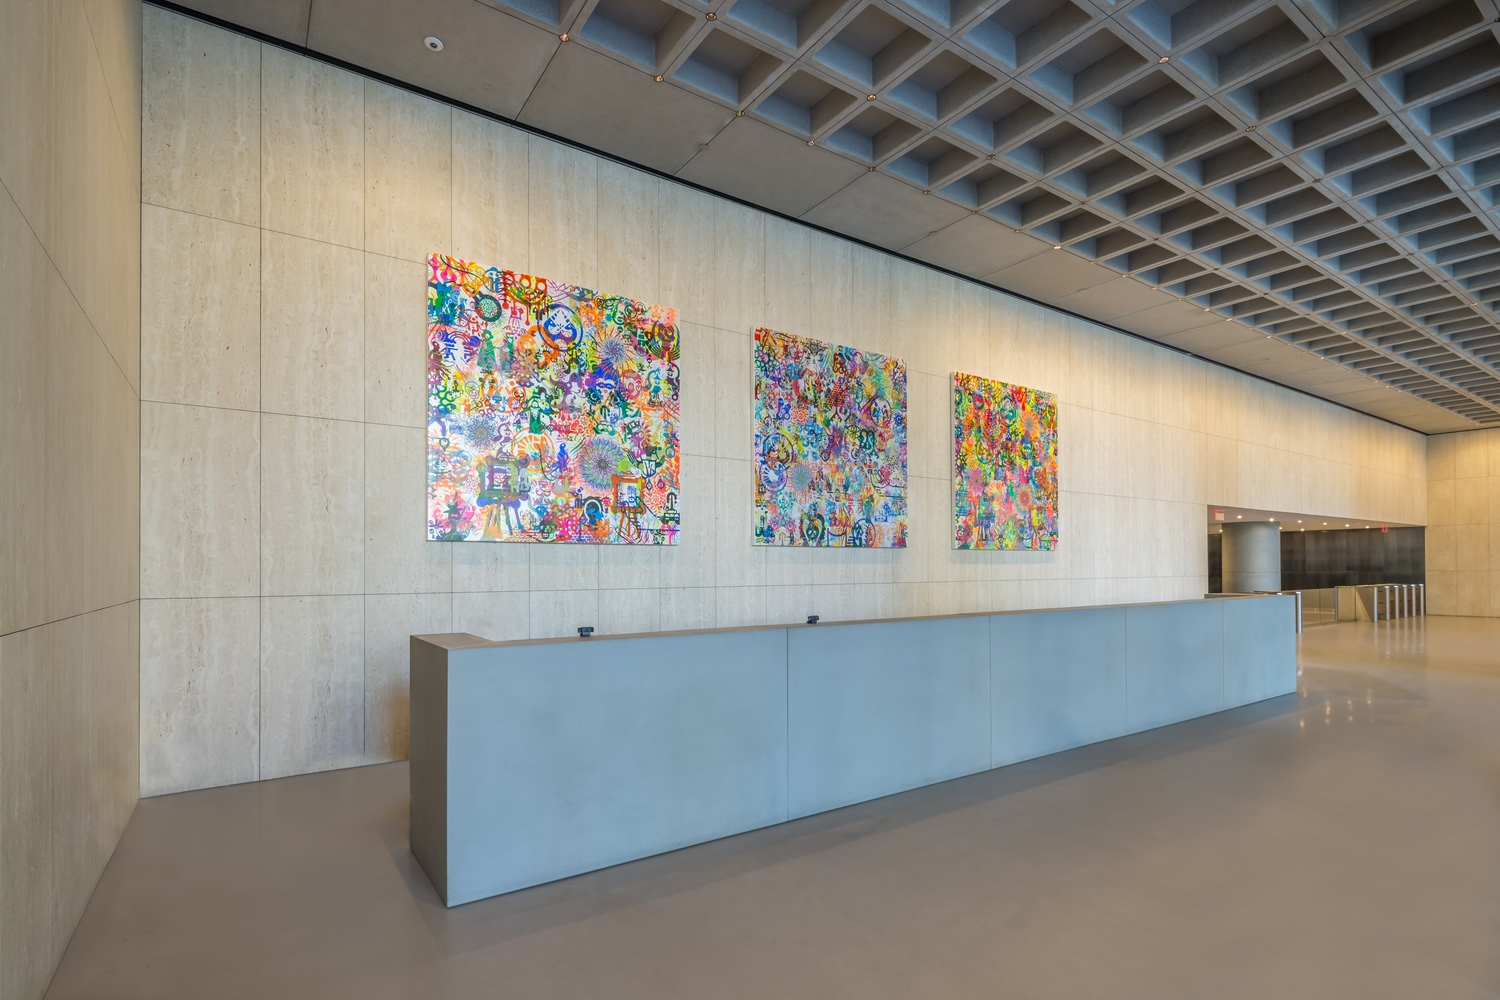 Large lobby that has a long counter in the middle of it and a tiled wall full of paintings.